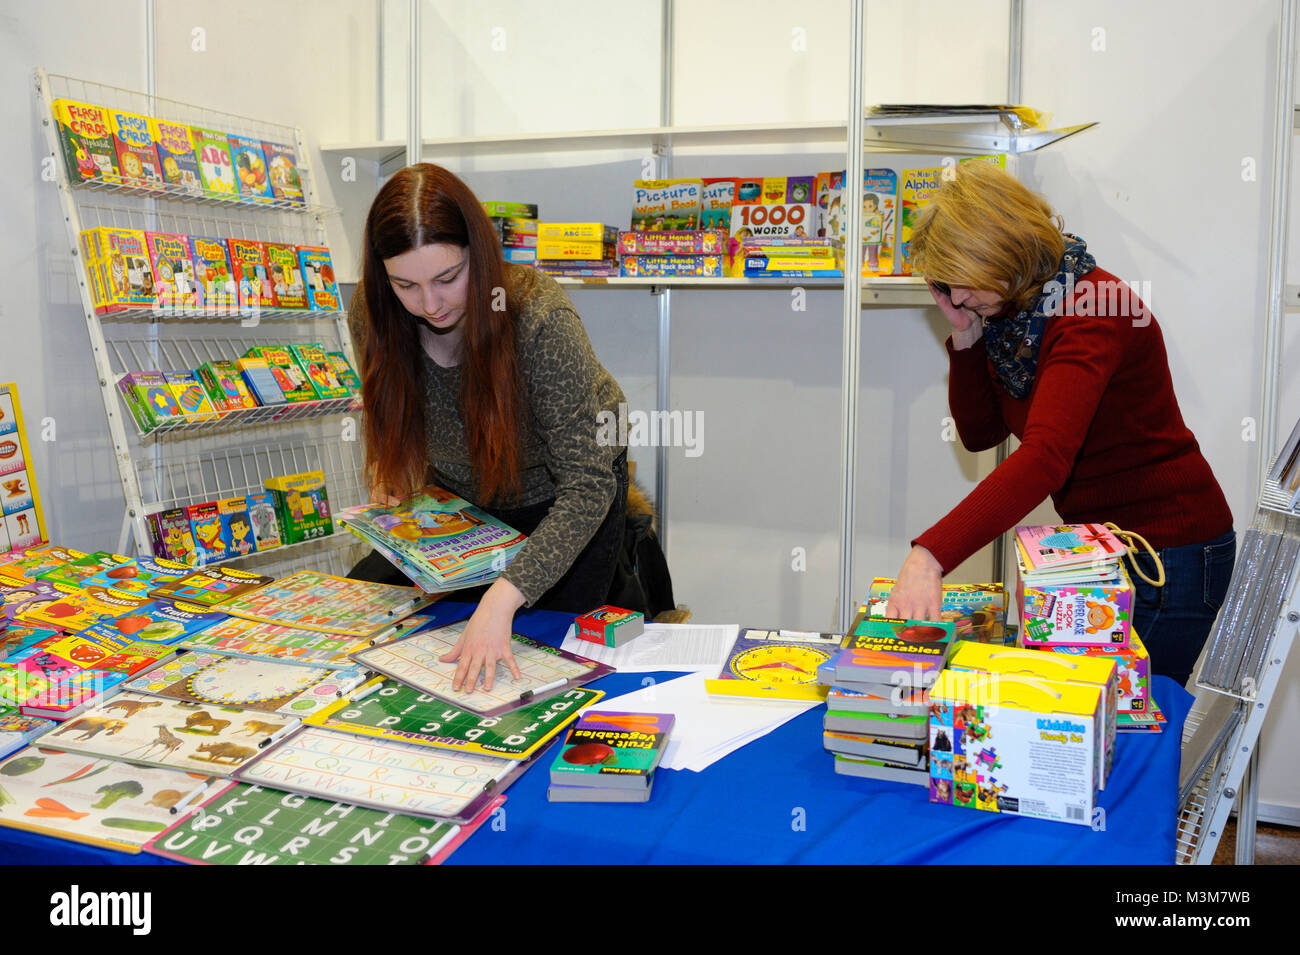 """Bookseller places books on bookshelves before opening a bookshop. Book Fair """"Book contracts"""". December 14, 2017. - Stock Image"""